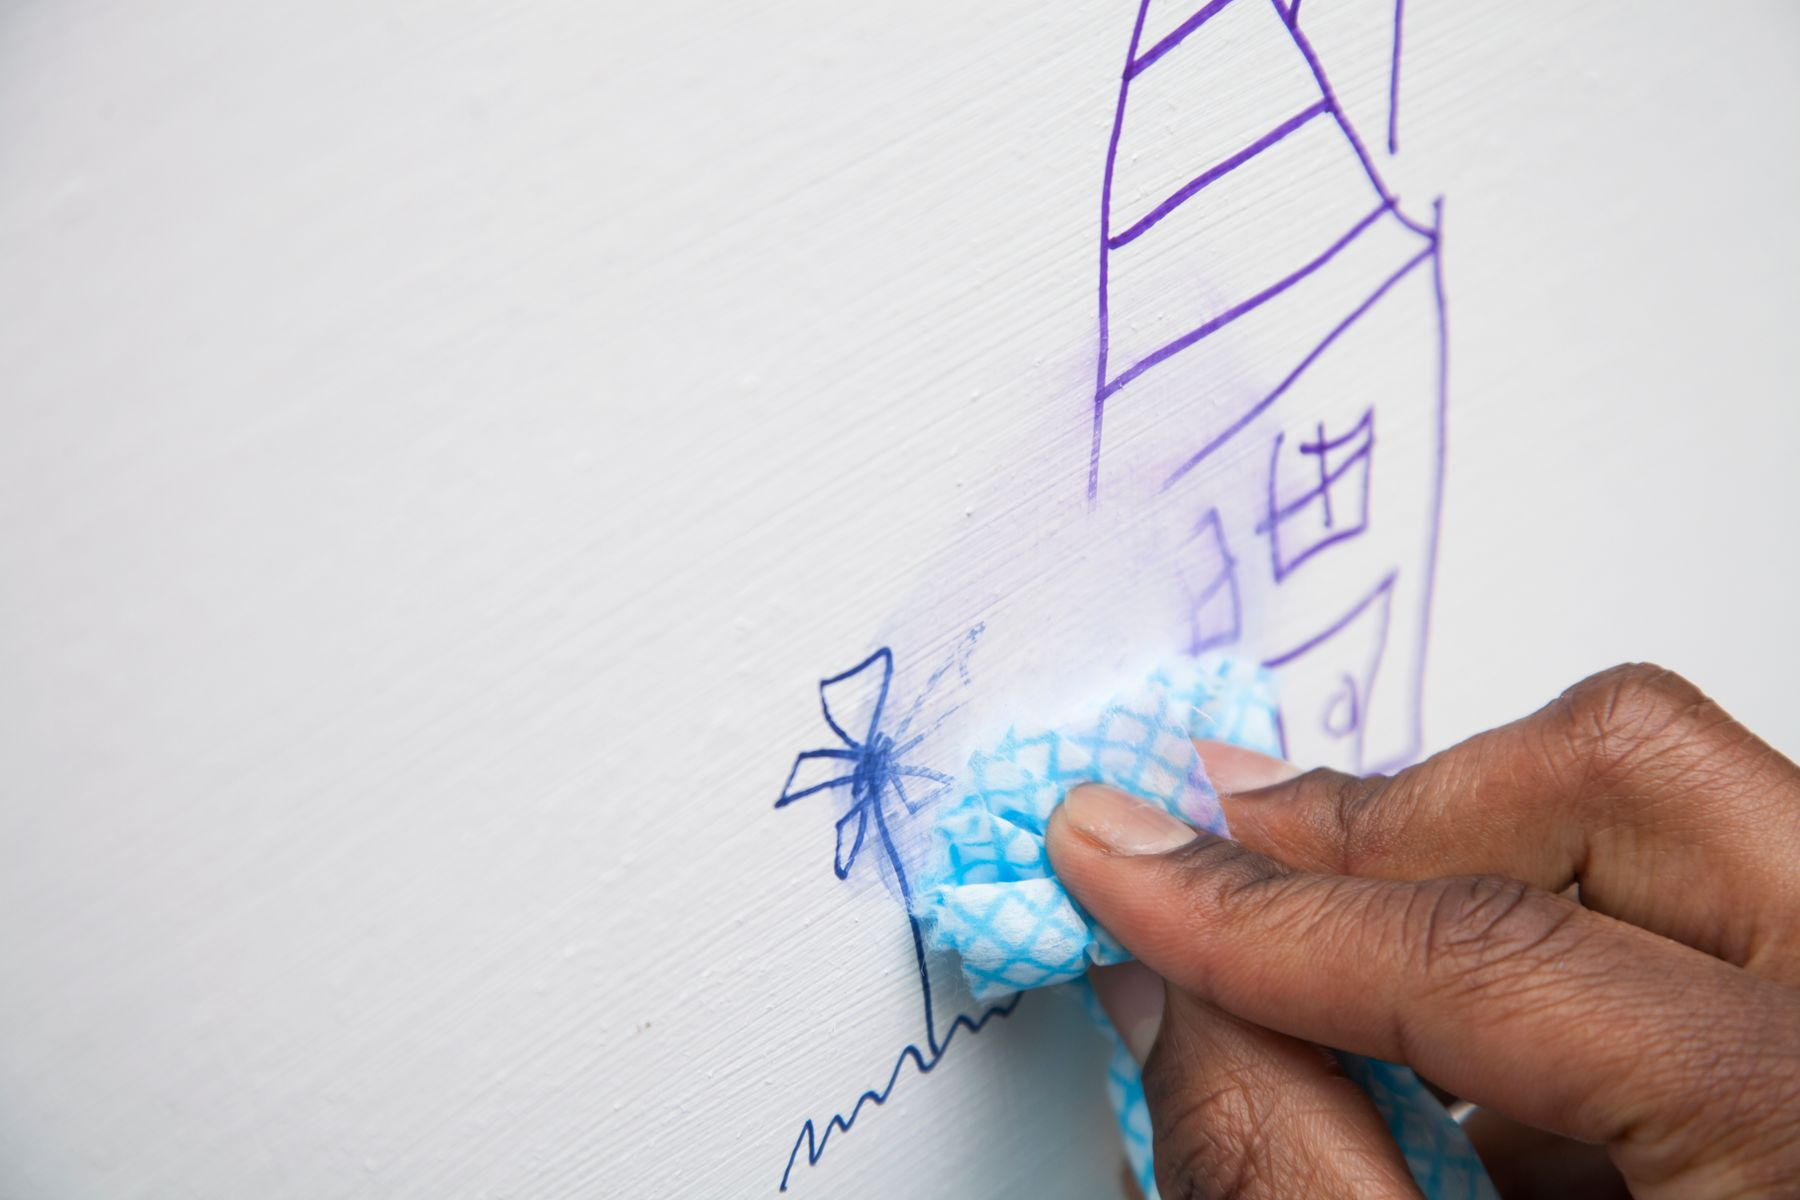 permanent marketing drawing on a wall being rubbed off with a cloth